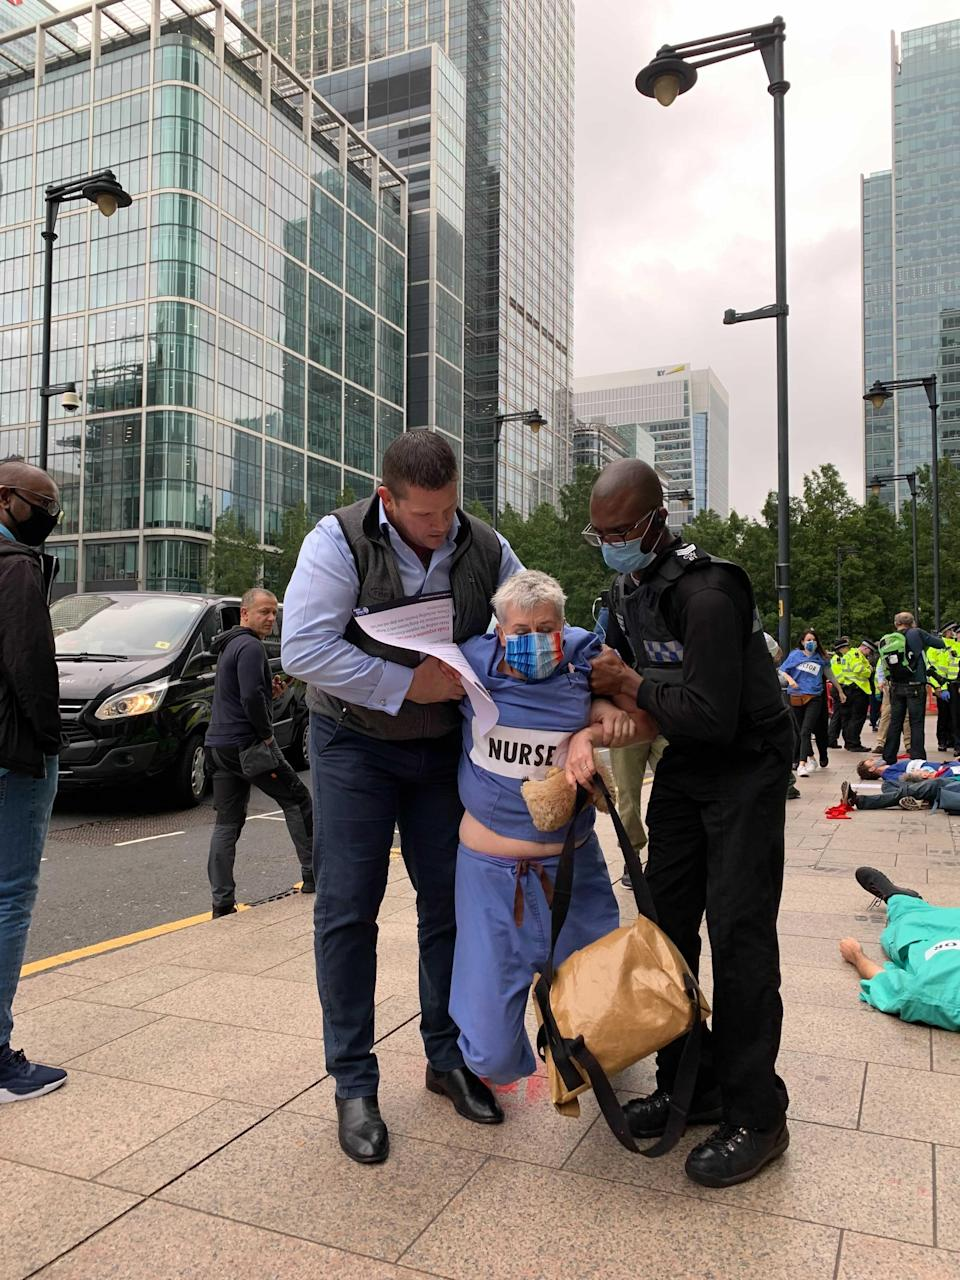 This woman dressed in nursing scrubs was led away by security (The Independent)